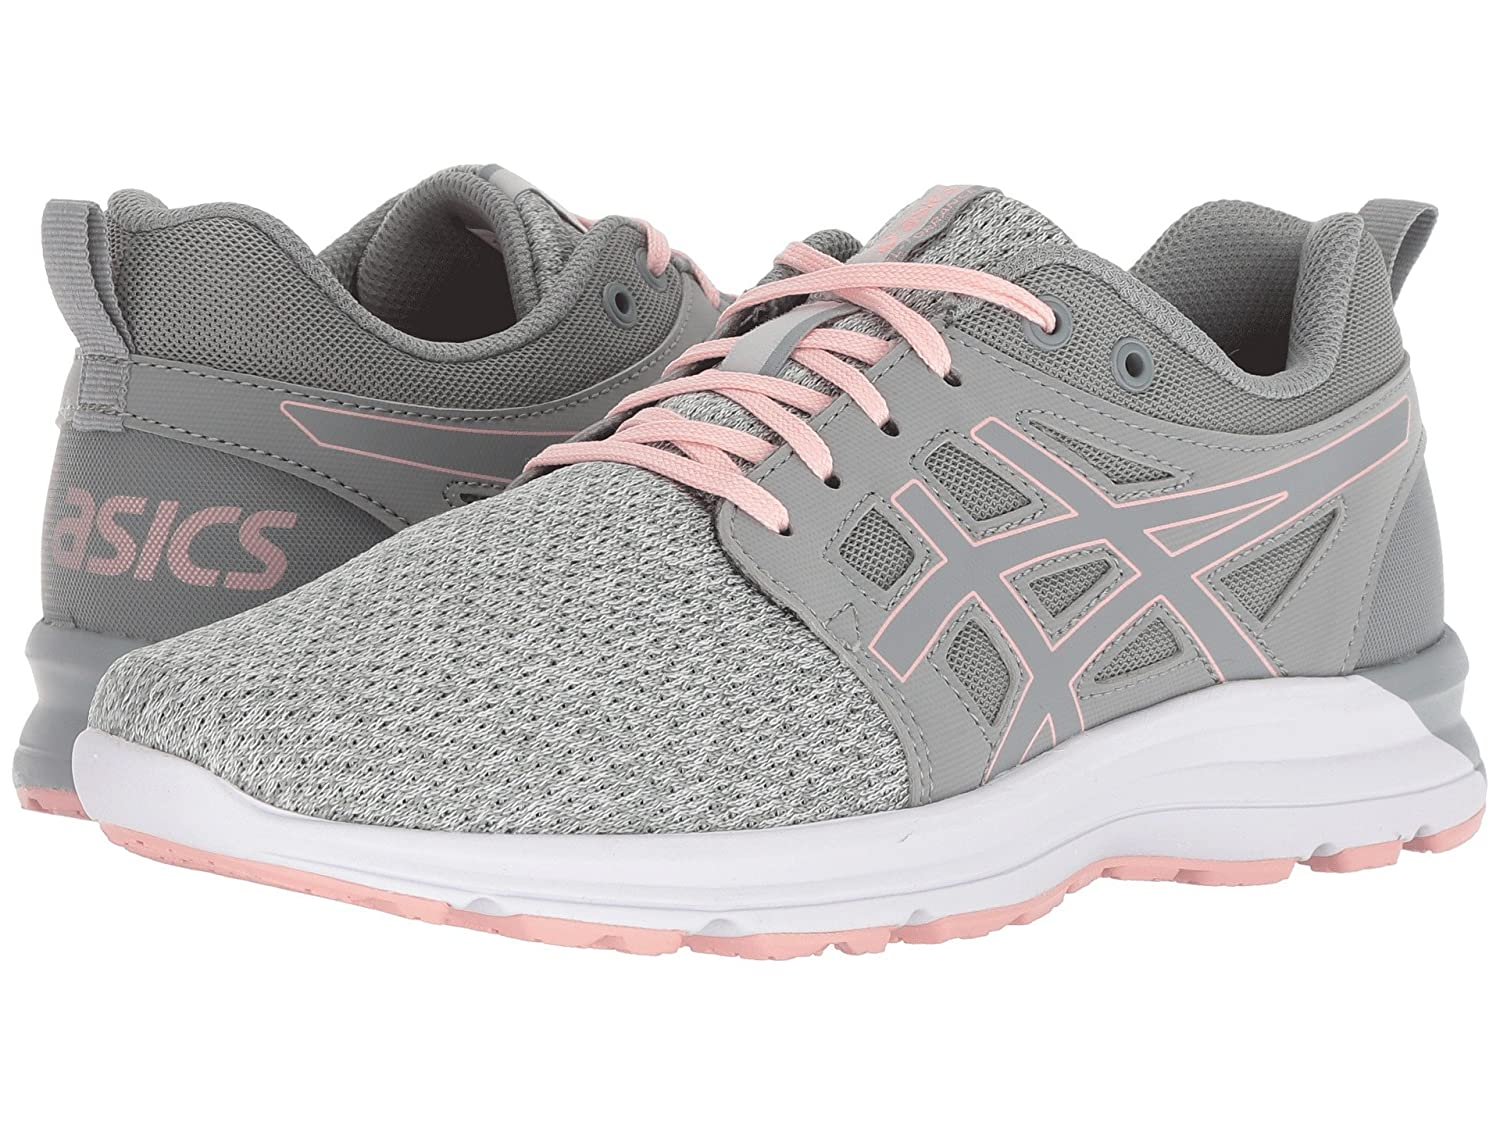 【日本未発売】 [アシックス] レディースランニングシューズスニーカー靴 GEL-Torrance [並行輸入品] B07FRZYTQP Stone Rose Grey Medium|Stone/Frosted B07FRZYTQP Rose 9.5 (26cm) B - Medium 9.5 (26cm) B - Medium|Stone Grey/Frosted Rose, 小坂町:4705a303 --- a0267596.xsph.ru